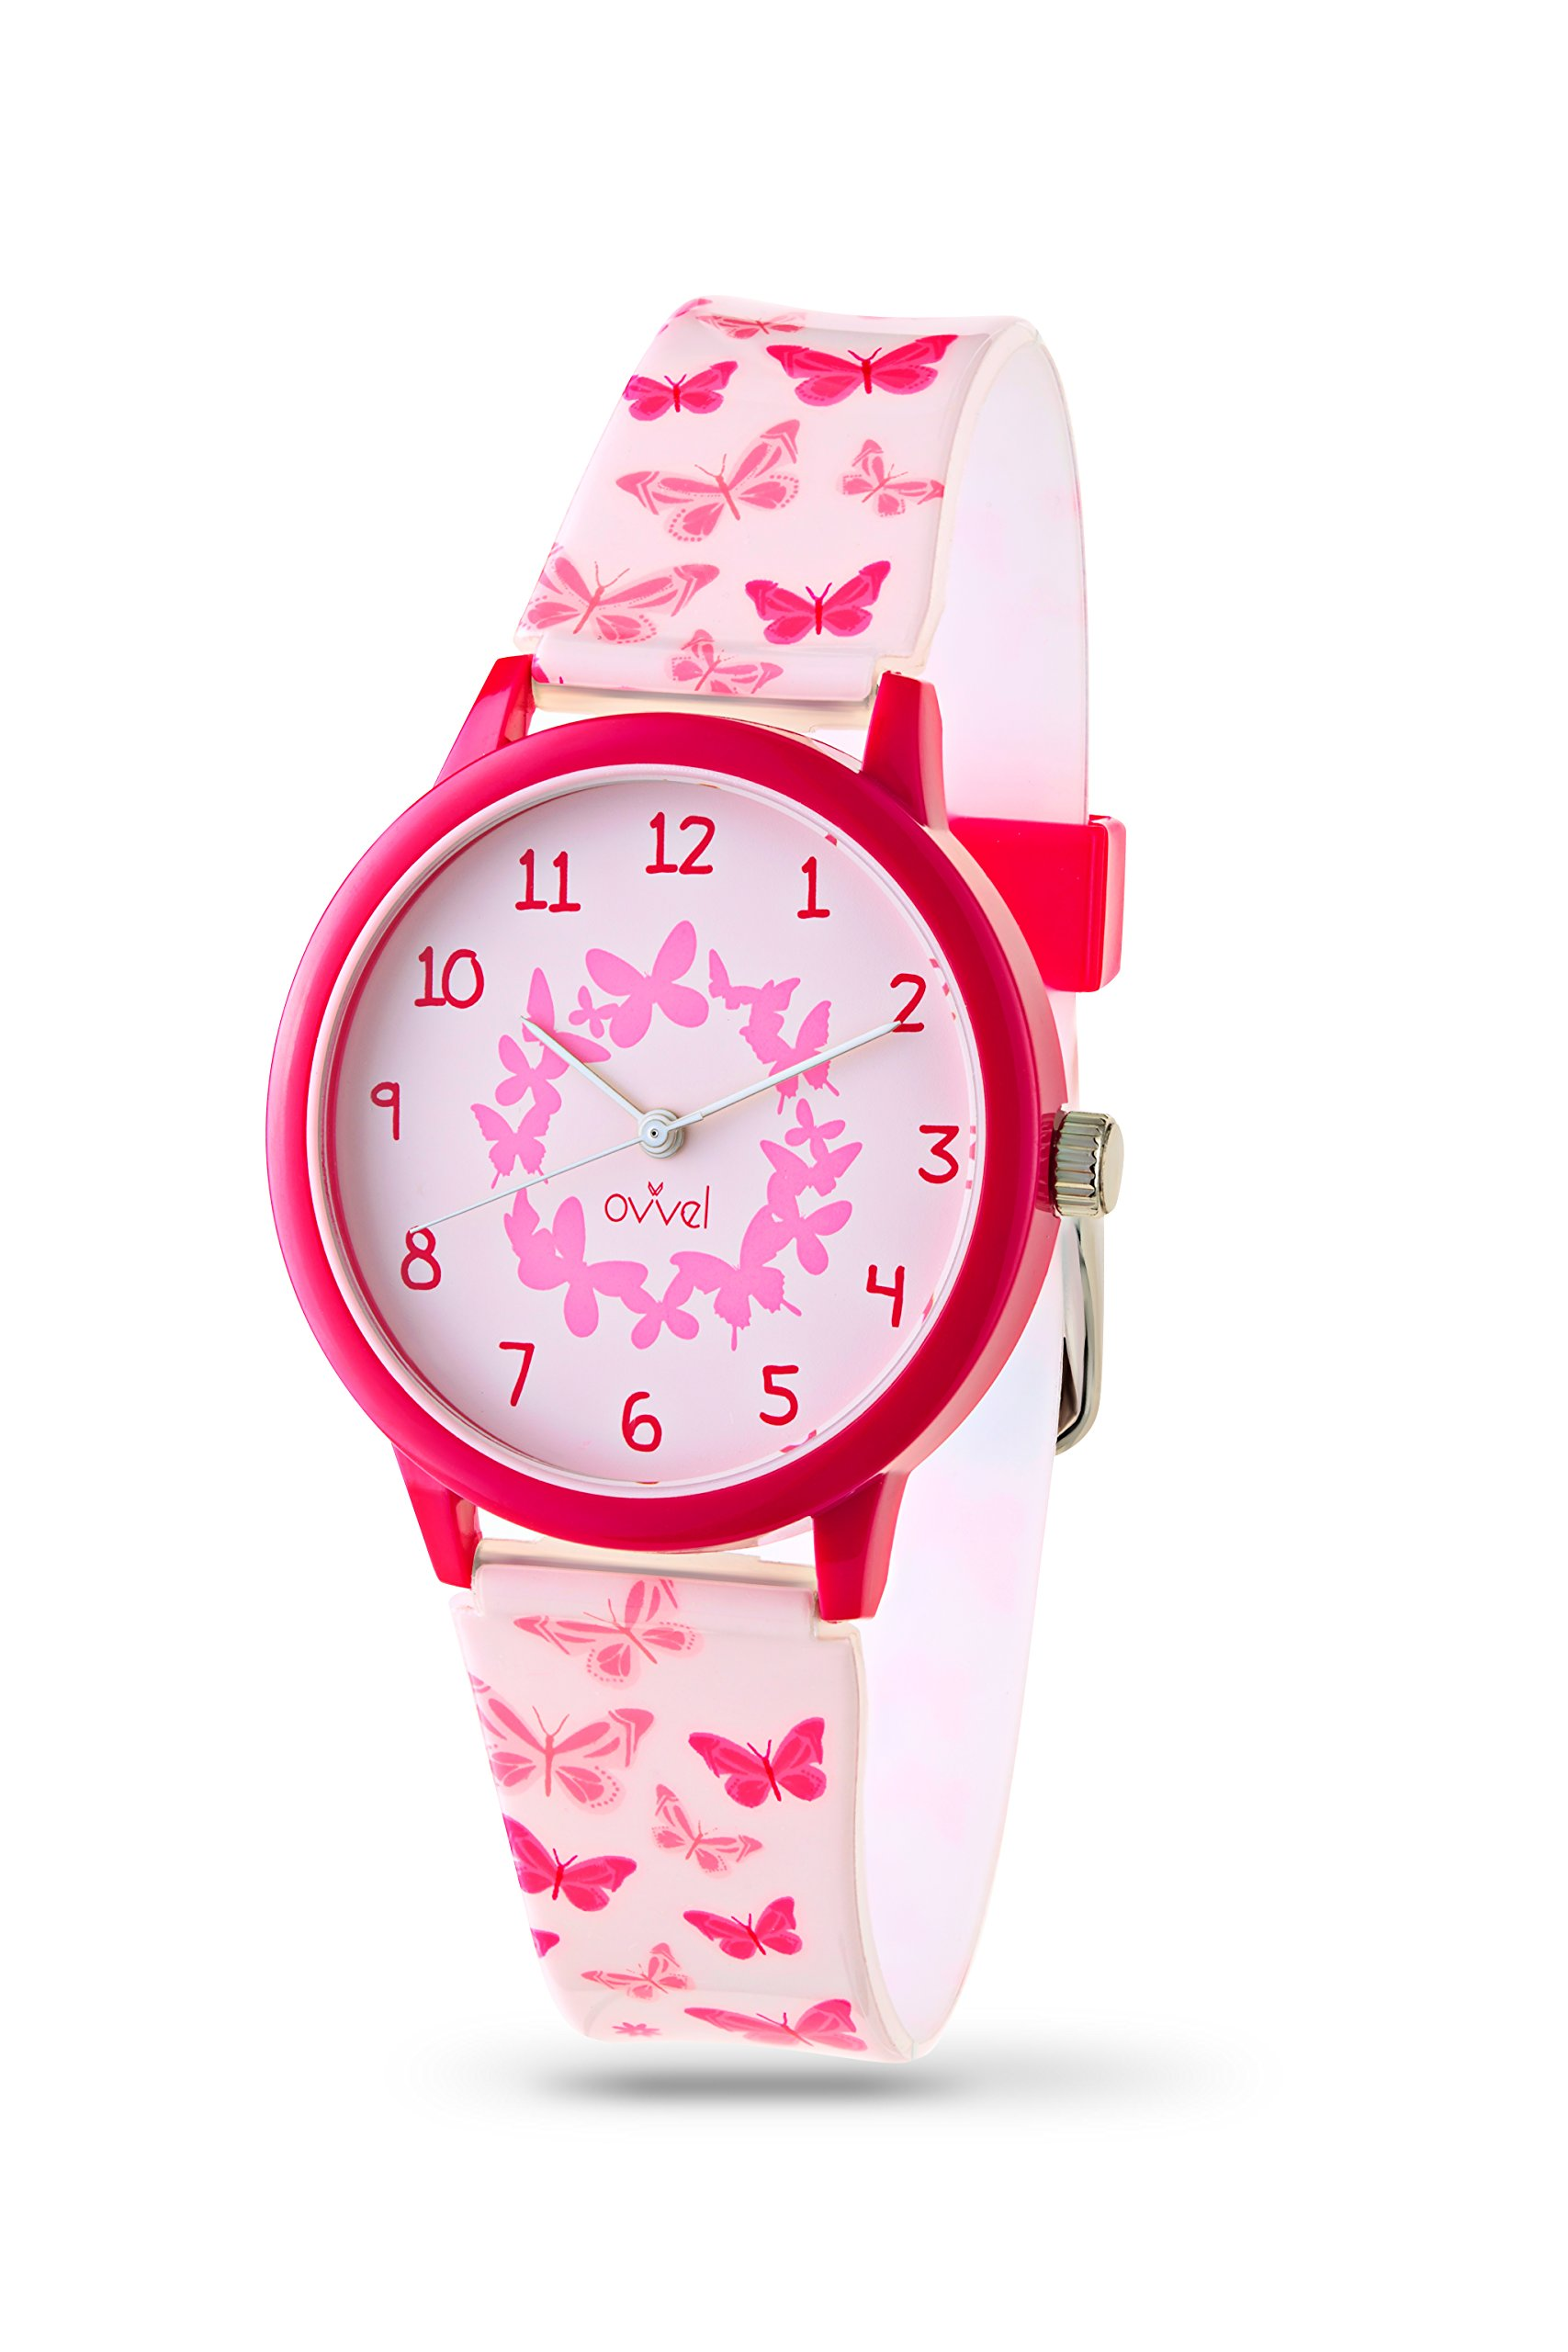 Ovvel Girls Watch - Pretty and Cute Kids Wrist with Teaching Analog Display Time Teacher - Japanese Quartz Movement - Pink Butterfly Design by Ovvel (Image #1)